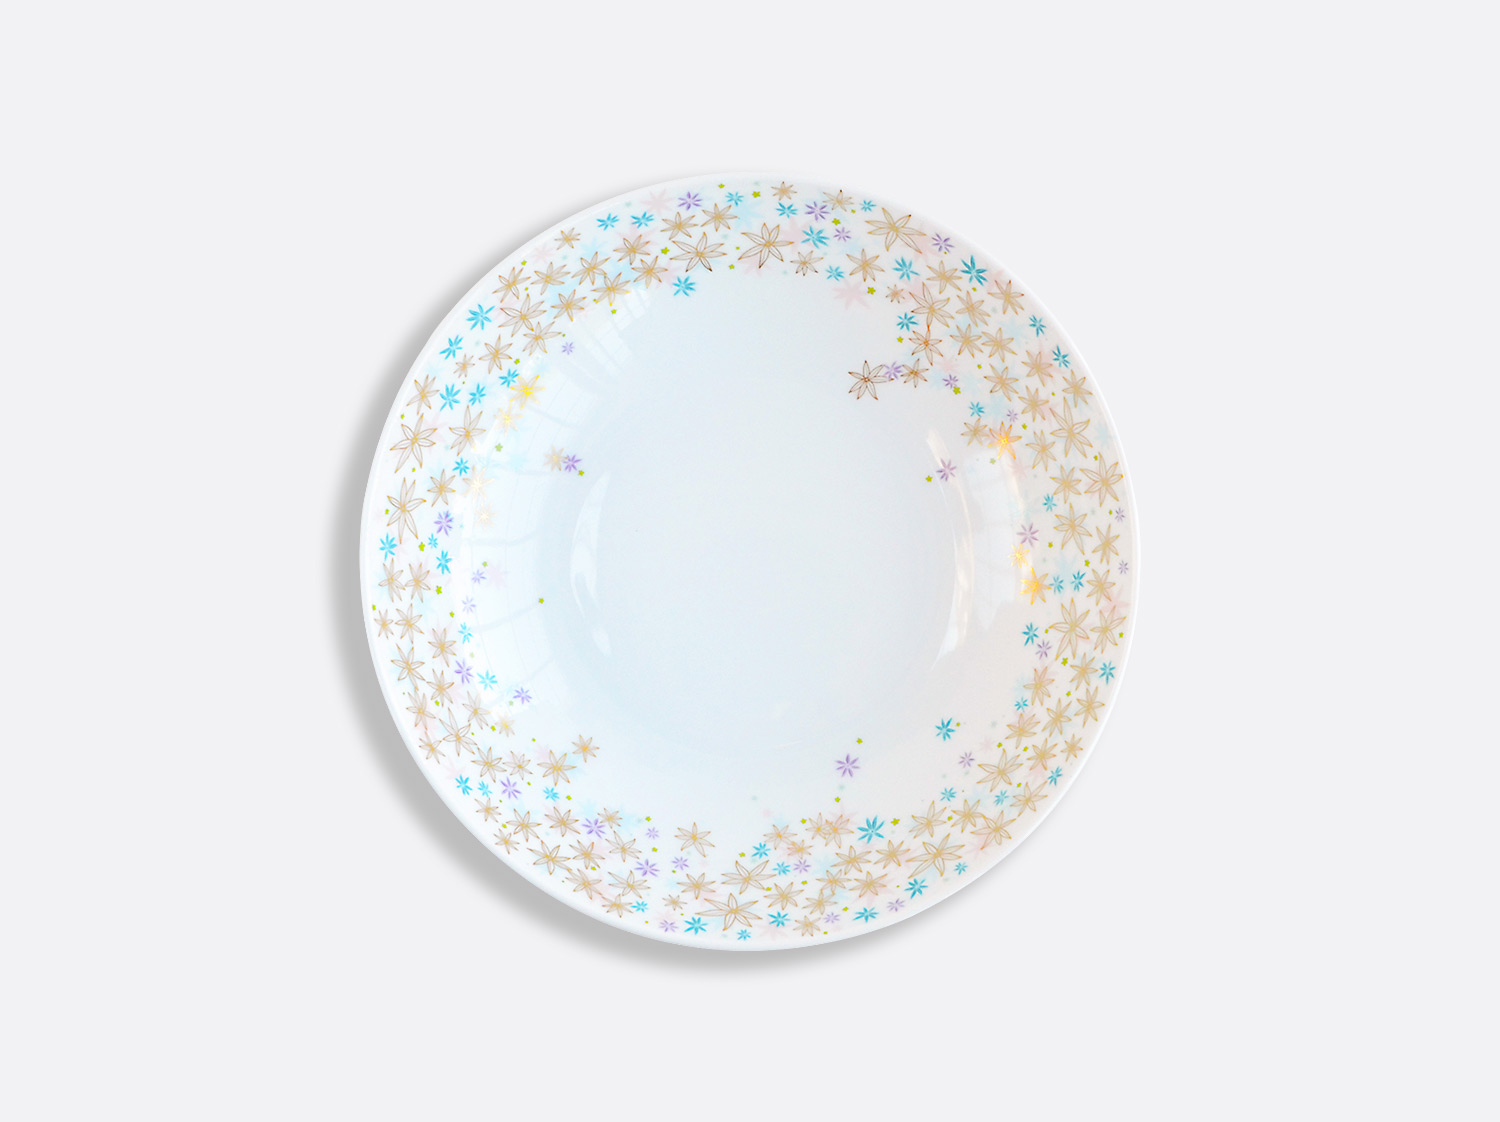 Assiette creuse calotte 19 cm en porcelaine de la collection FÉERIE - MICHAËL CAILLOUX Bernardaud